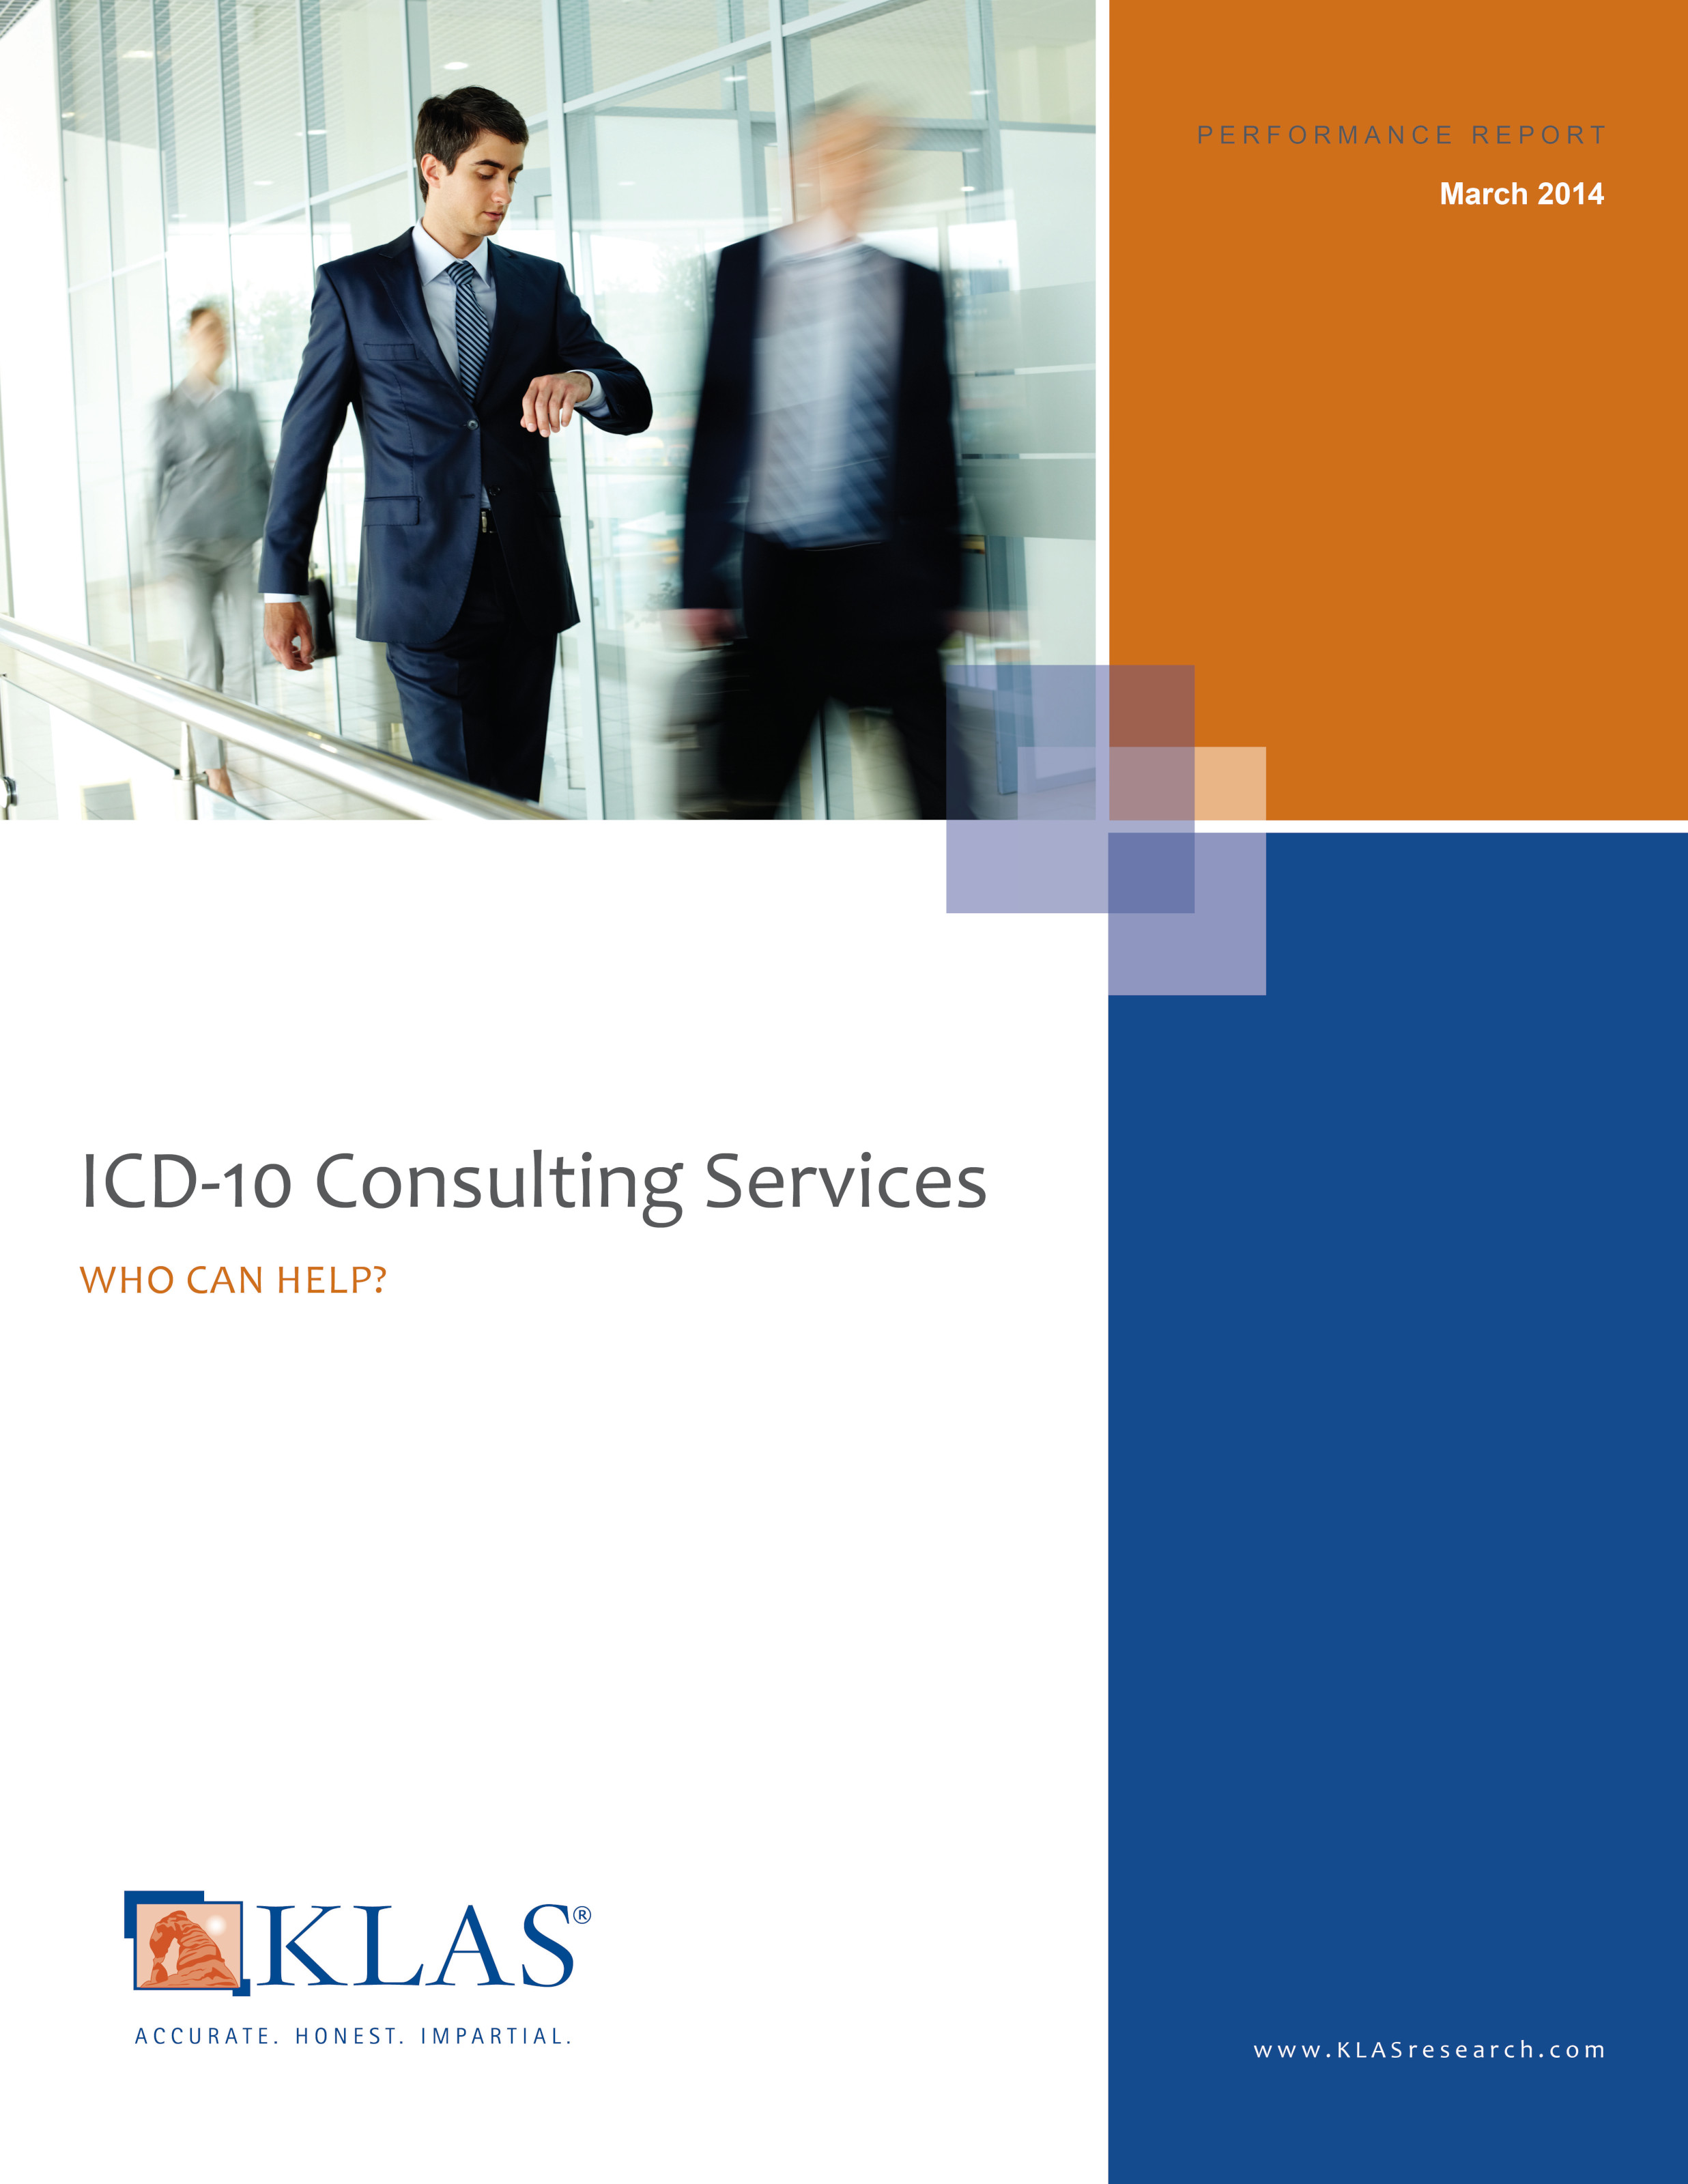 ICD-10 Consulting Services